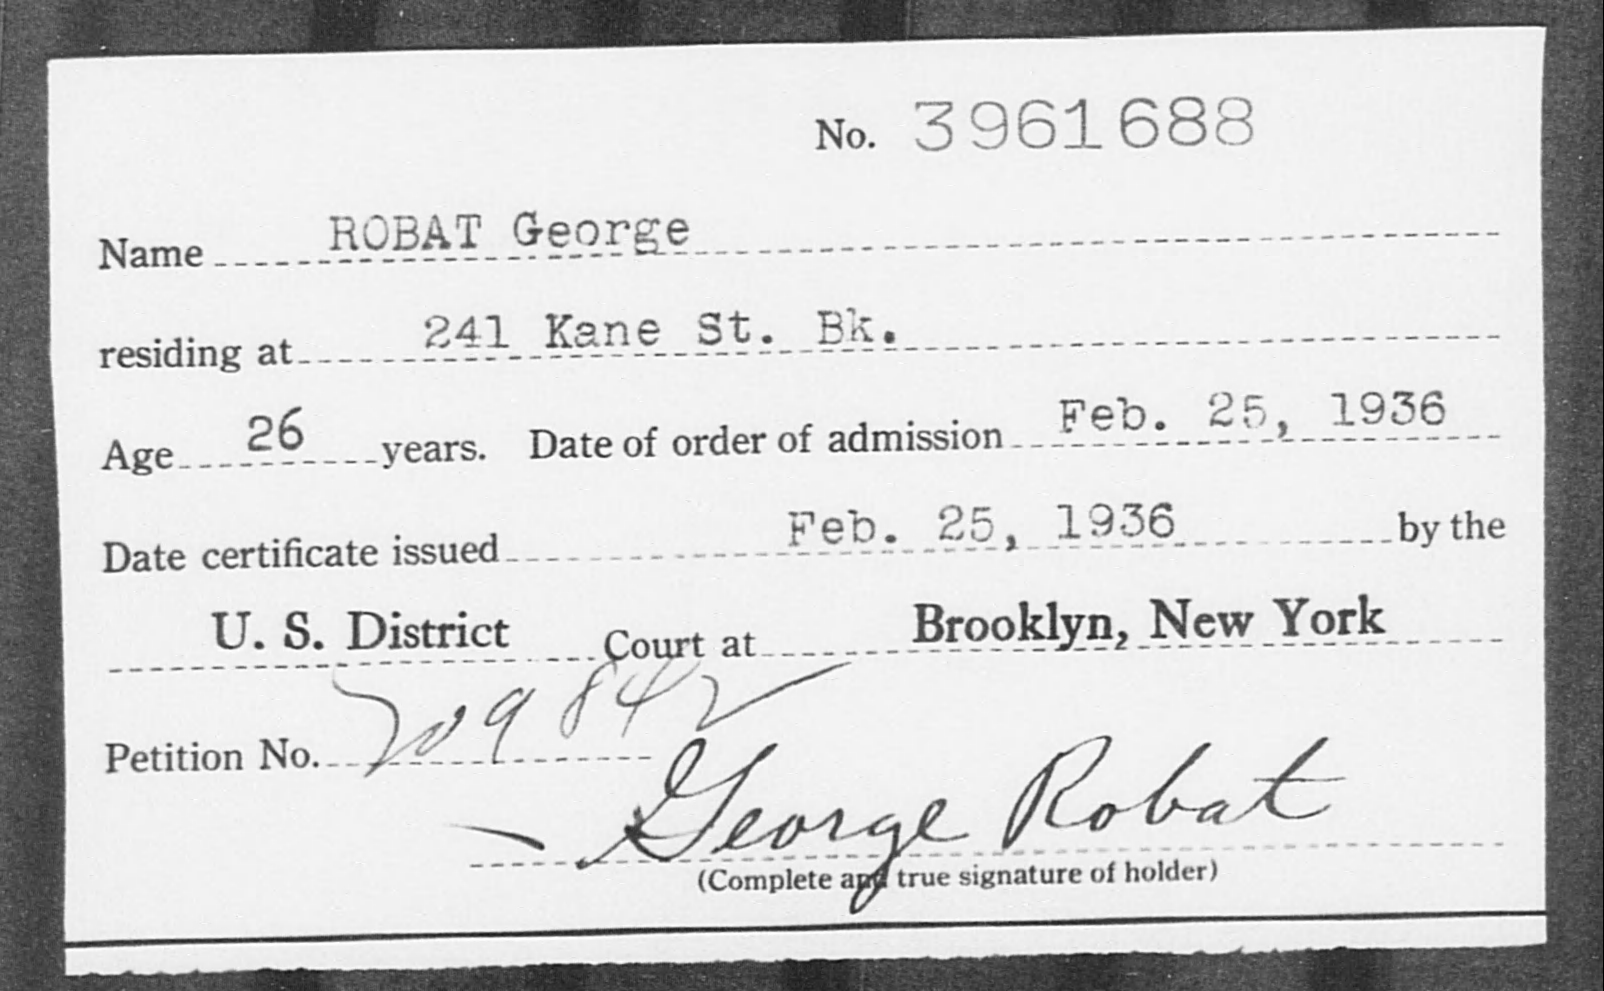 ROBAT George - Born: [BLANK], Naturalized: 1936